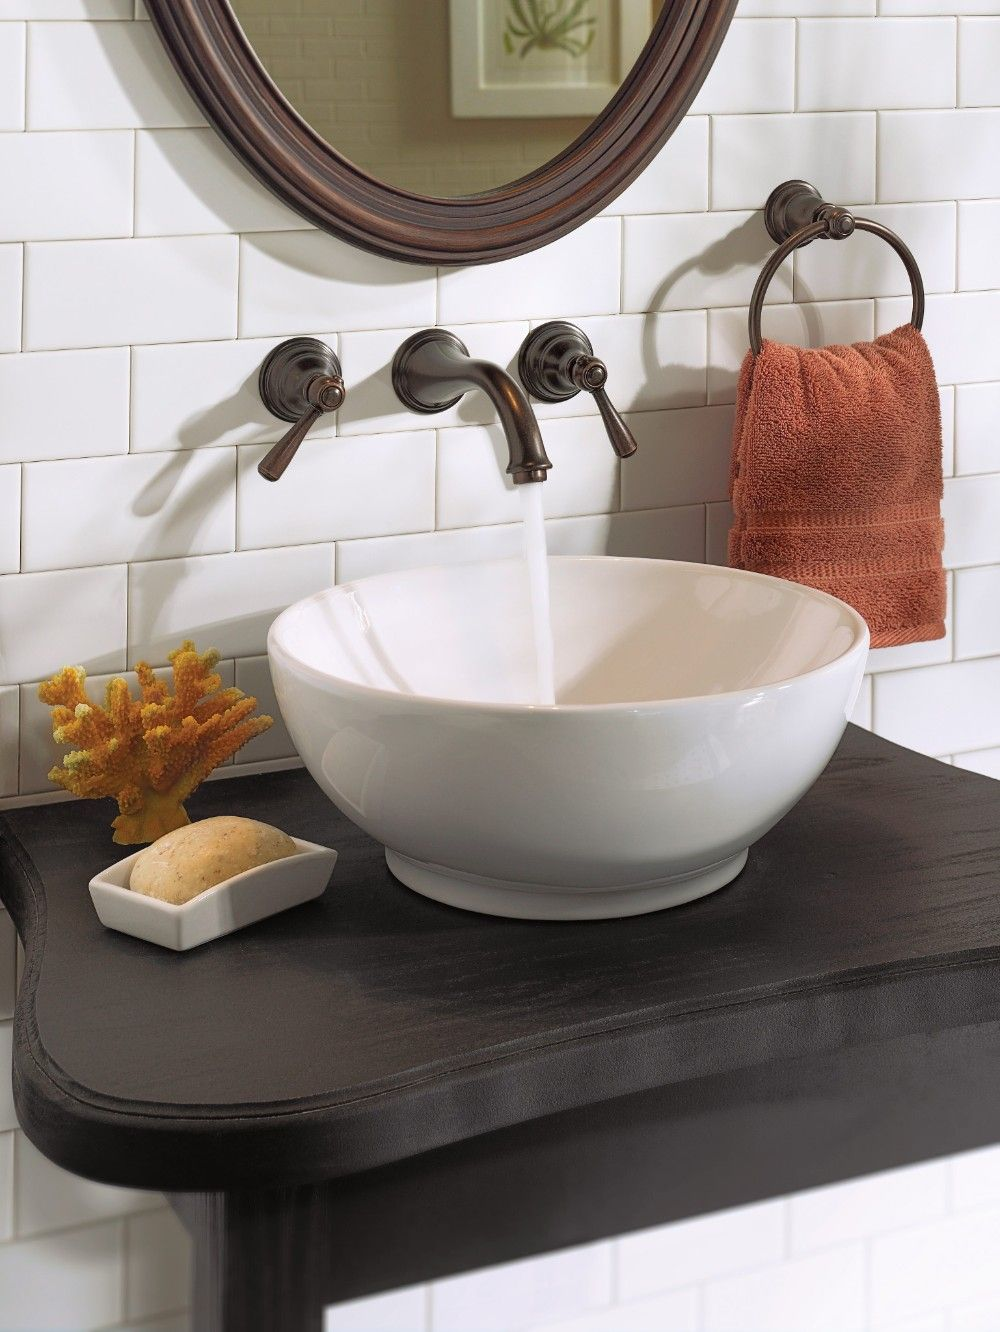 master bath faucet - Kingsley Oil rubbed bronze two-handle low arc ...